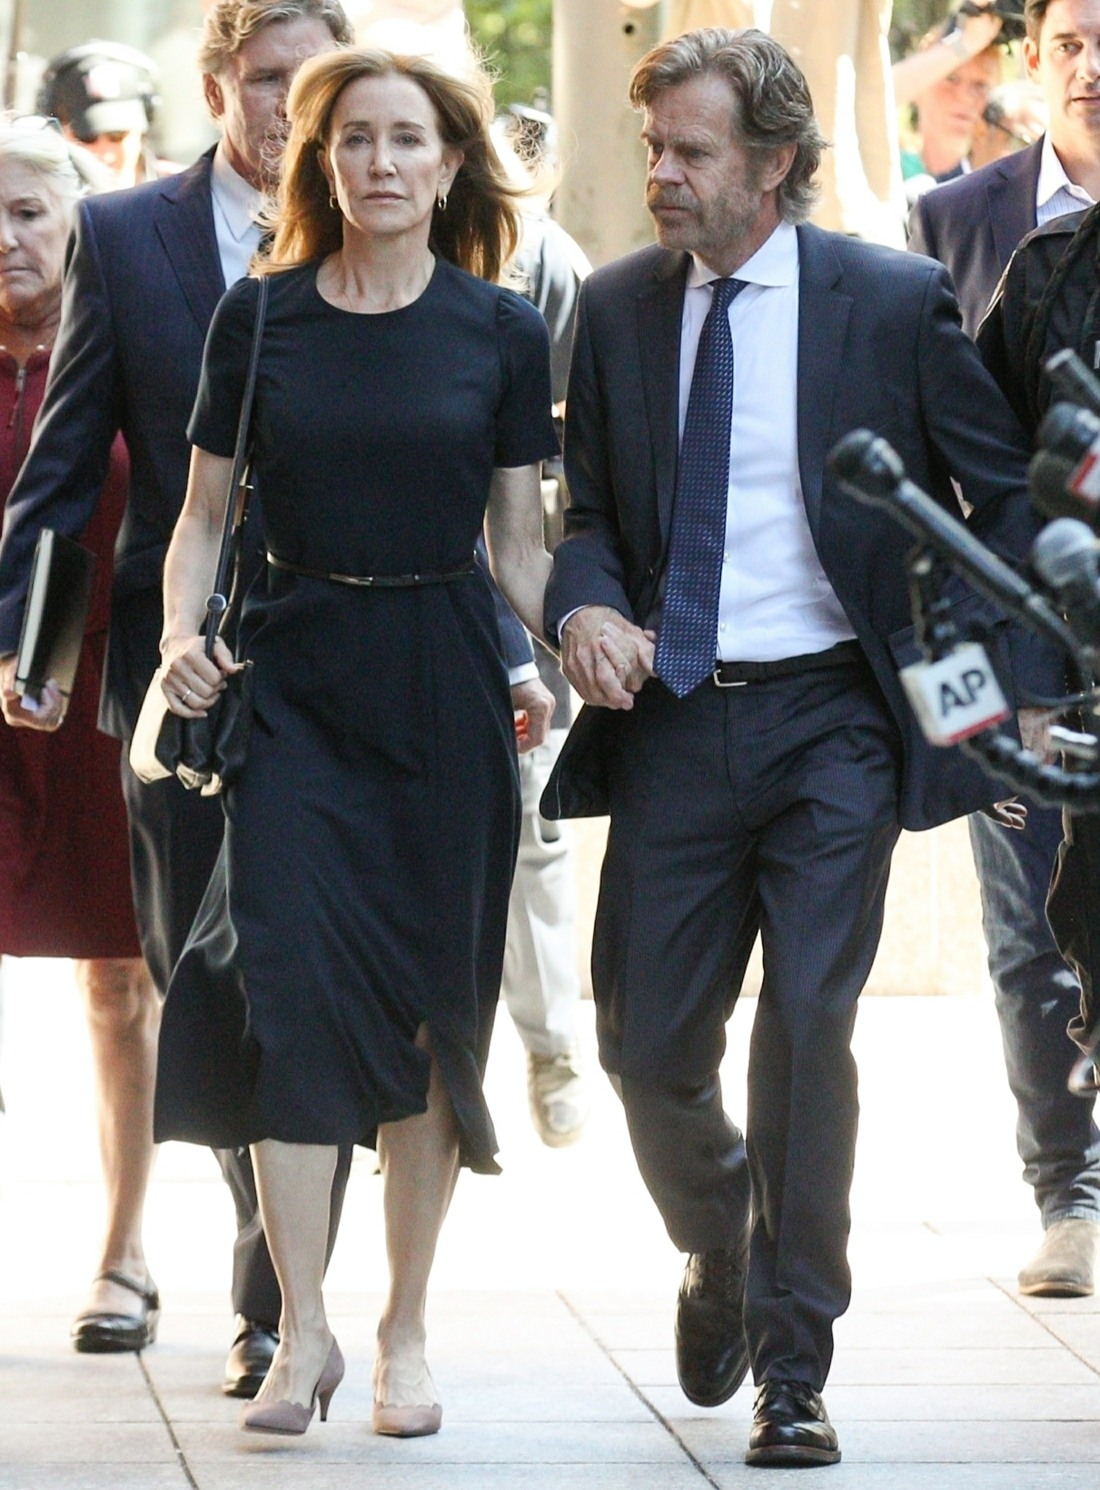 Felicity Huffman and William H Macy enter Federal Court ahead of sentencing for Felicity's part in the college admission scandal!